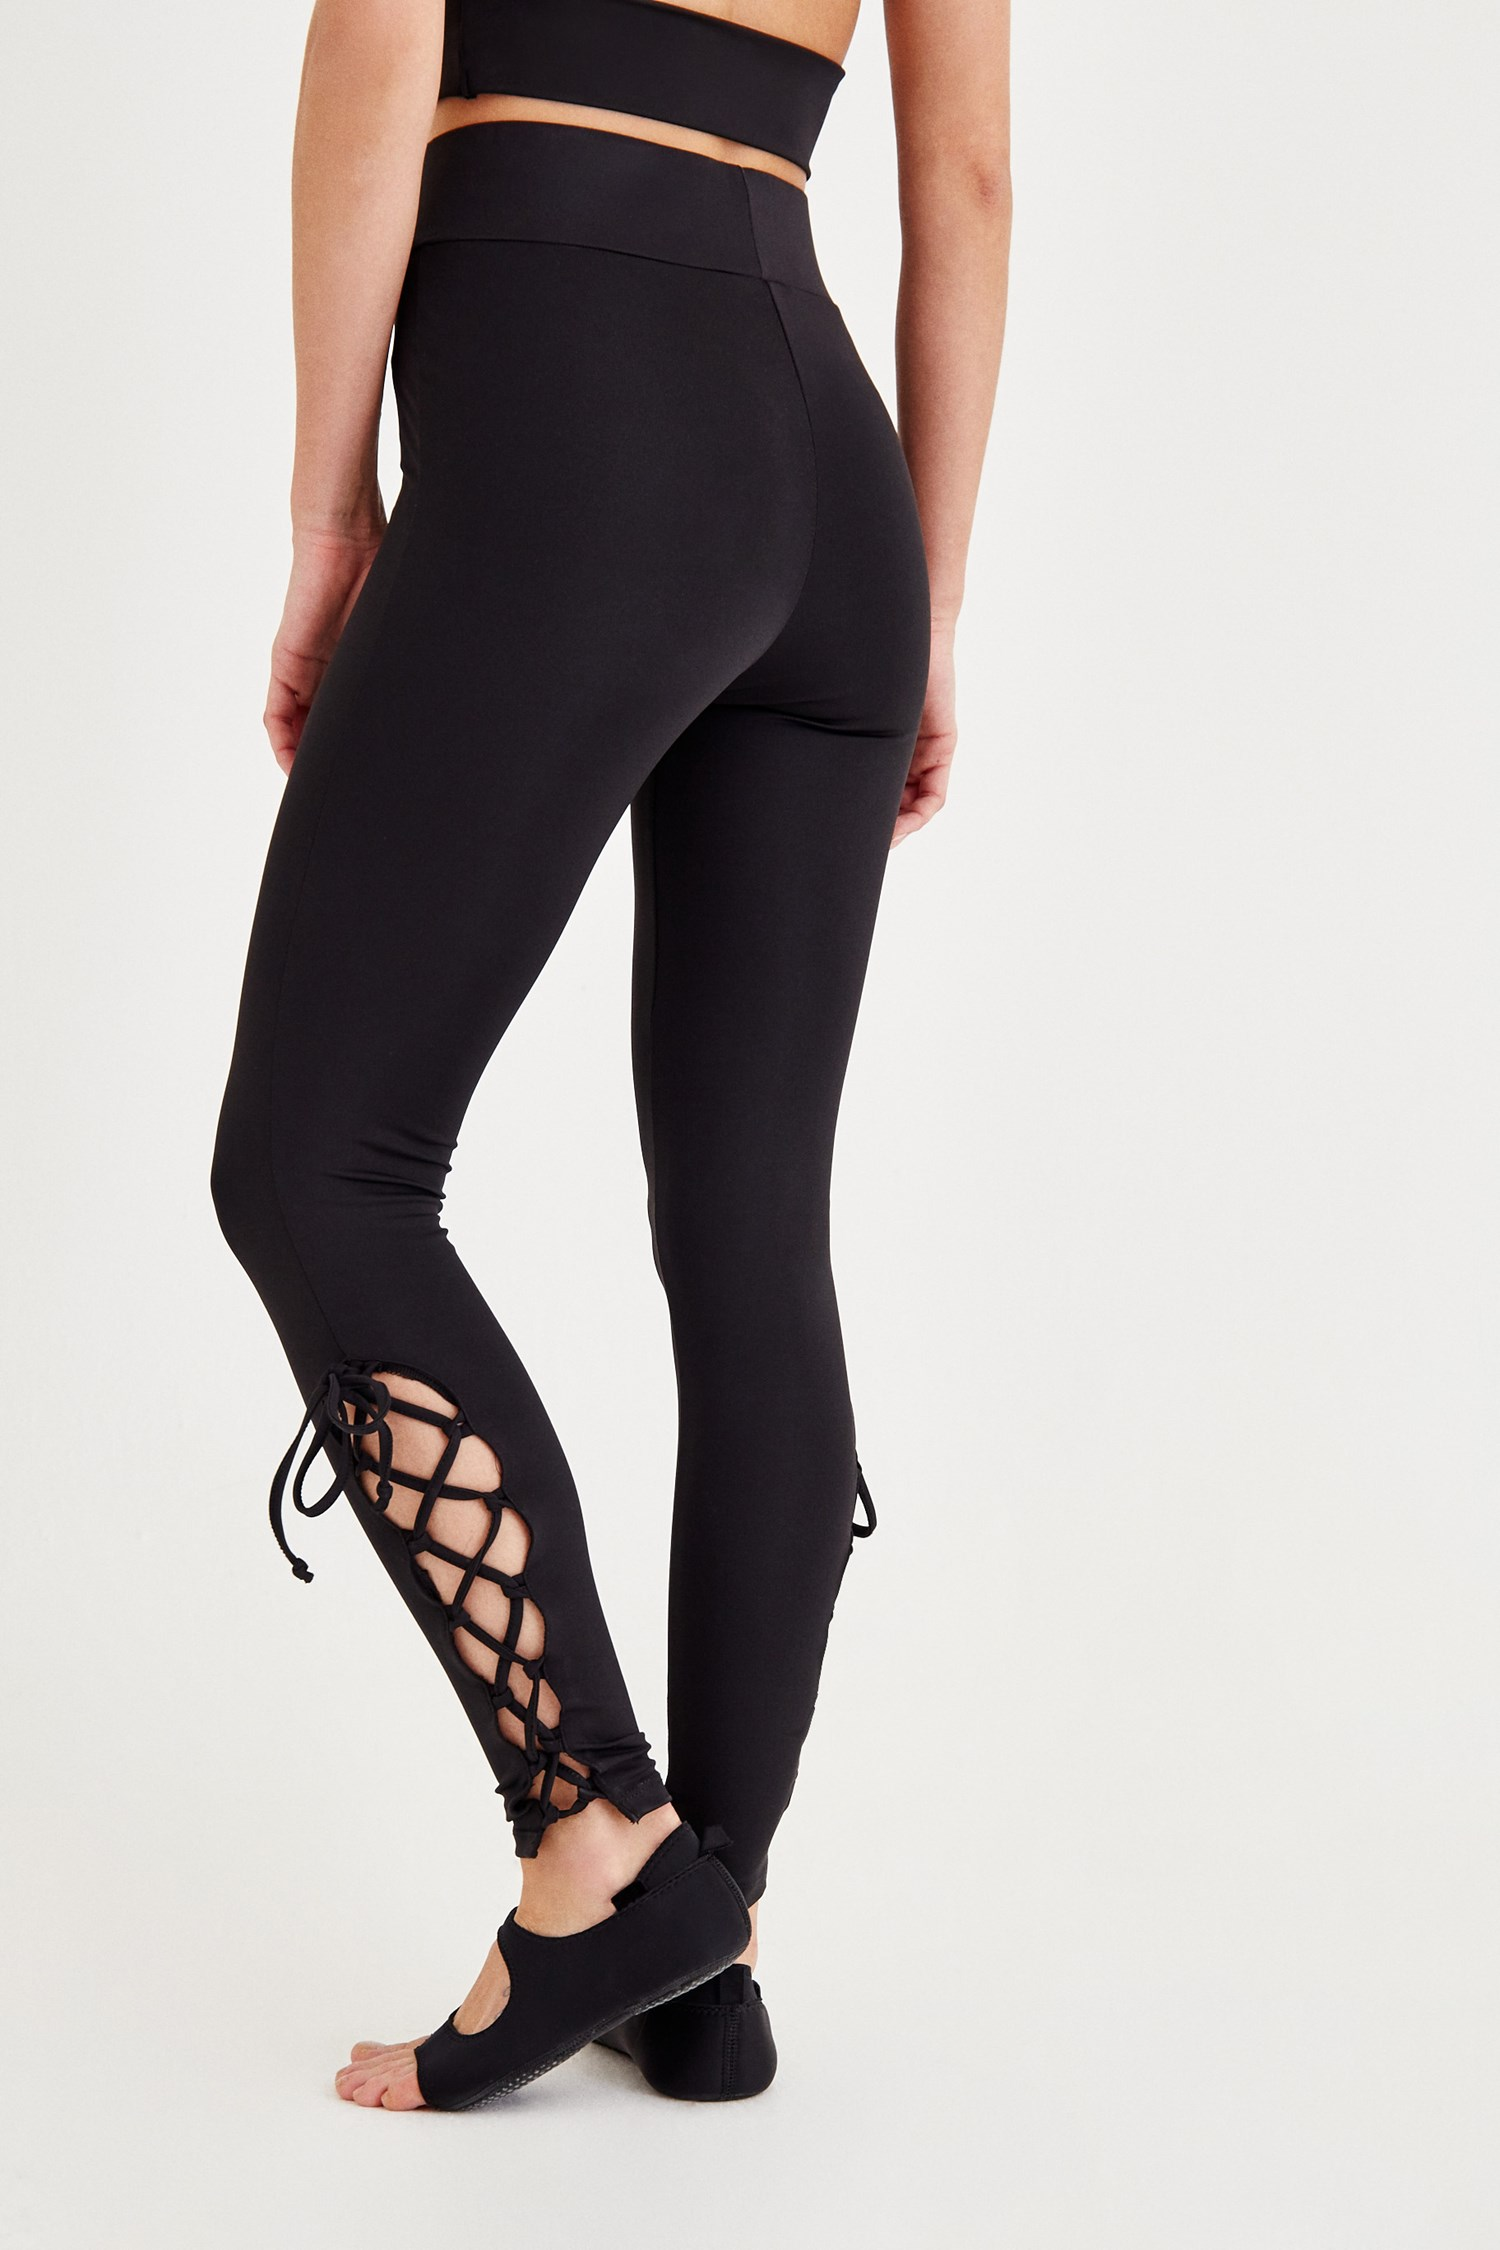 Women Black Sport Tights with Binding Details